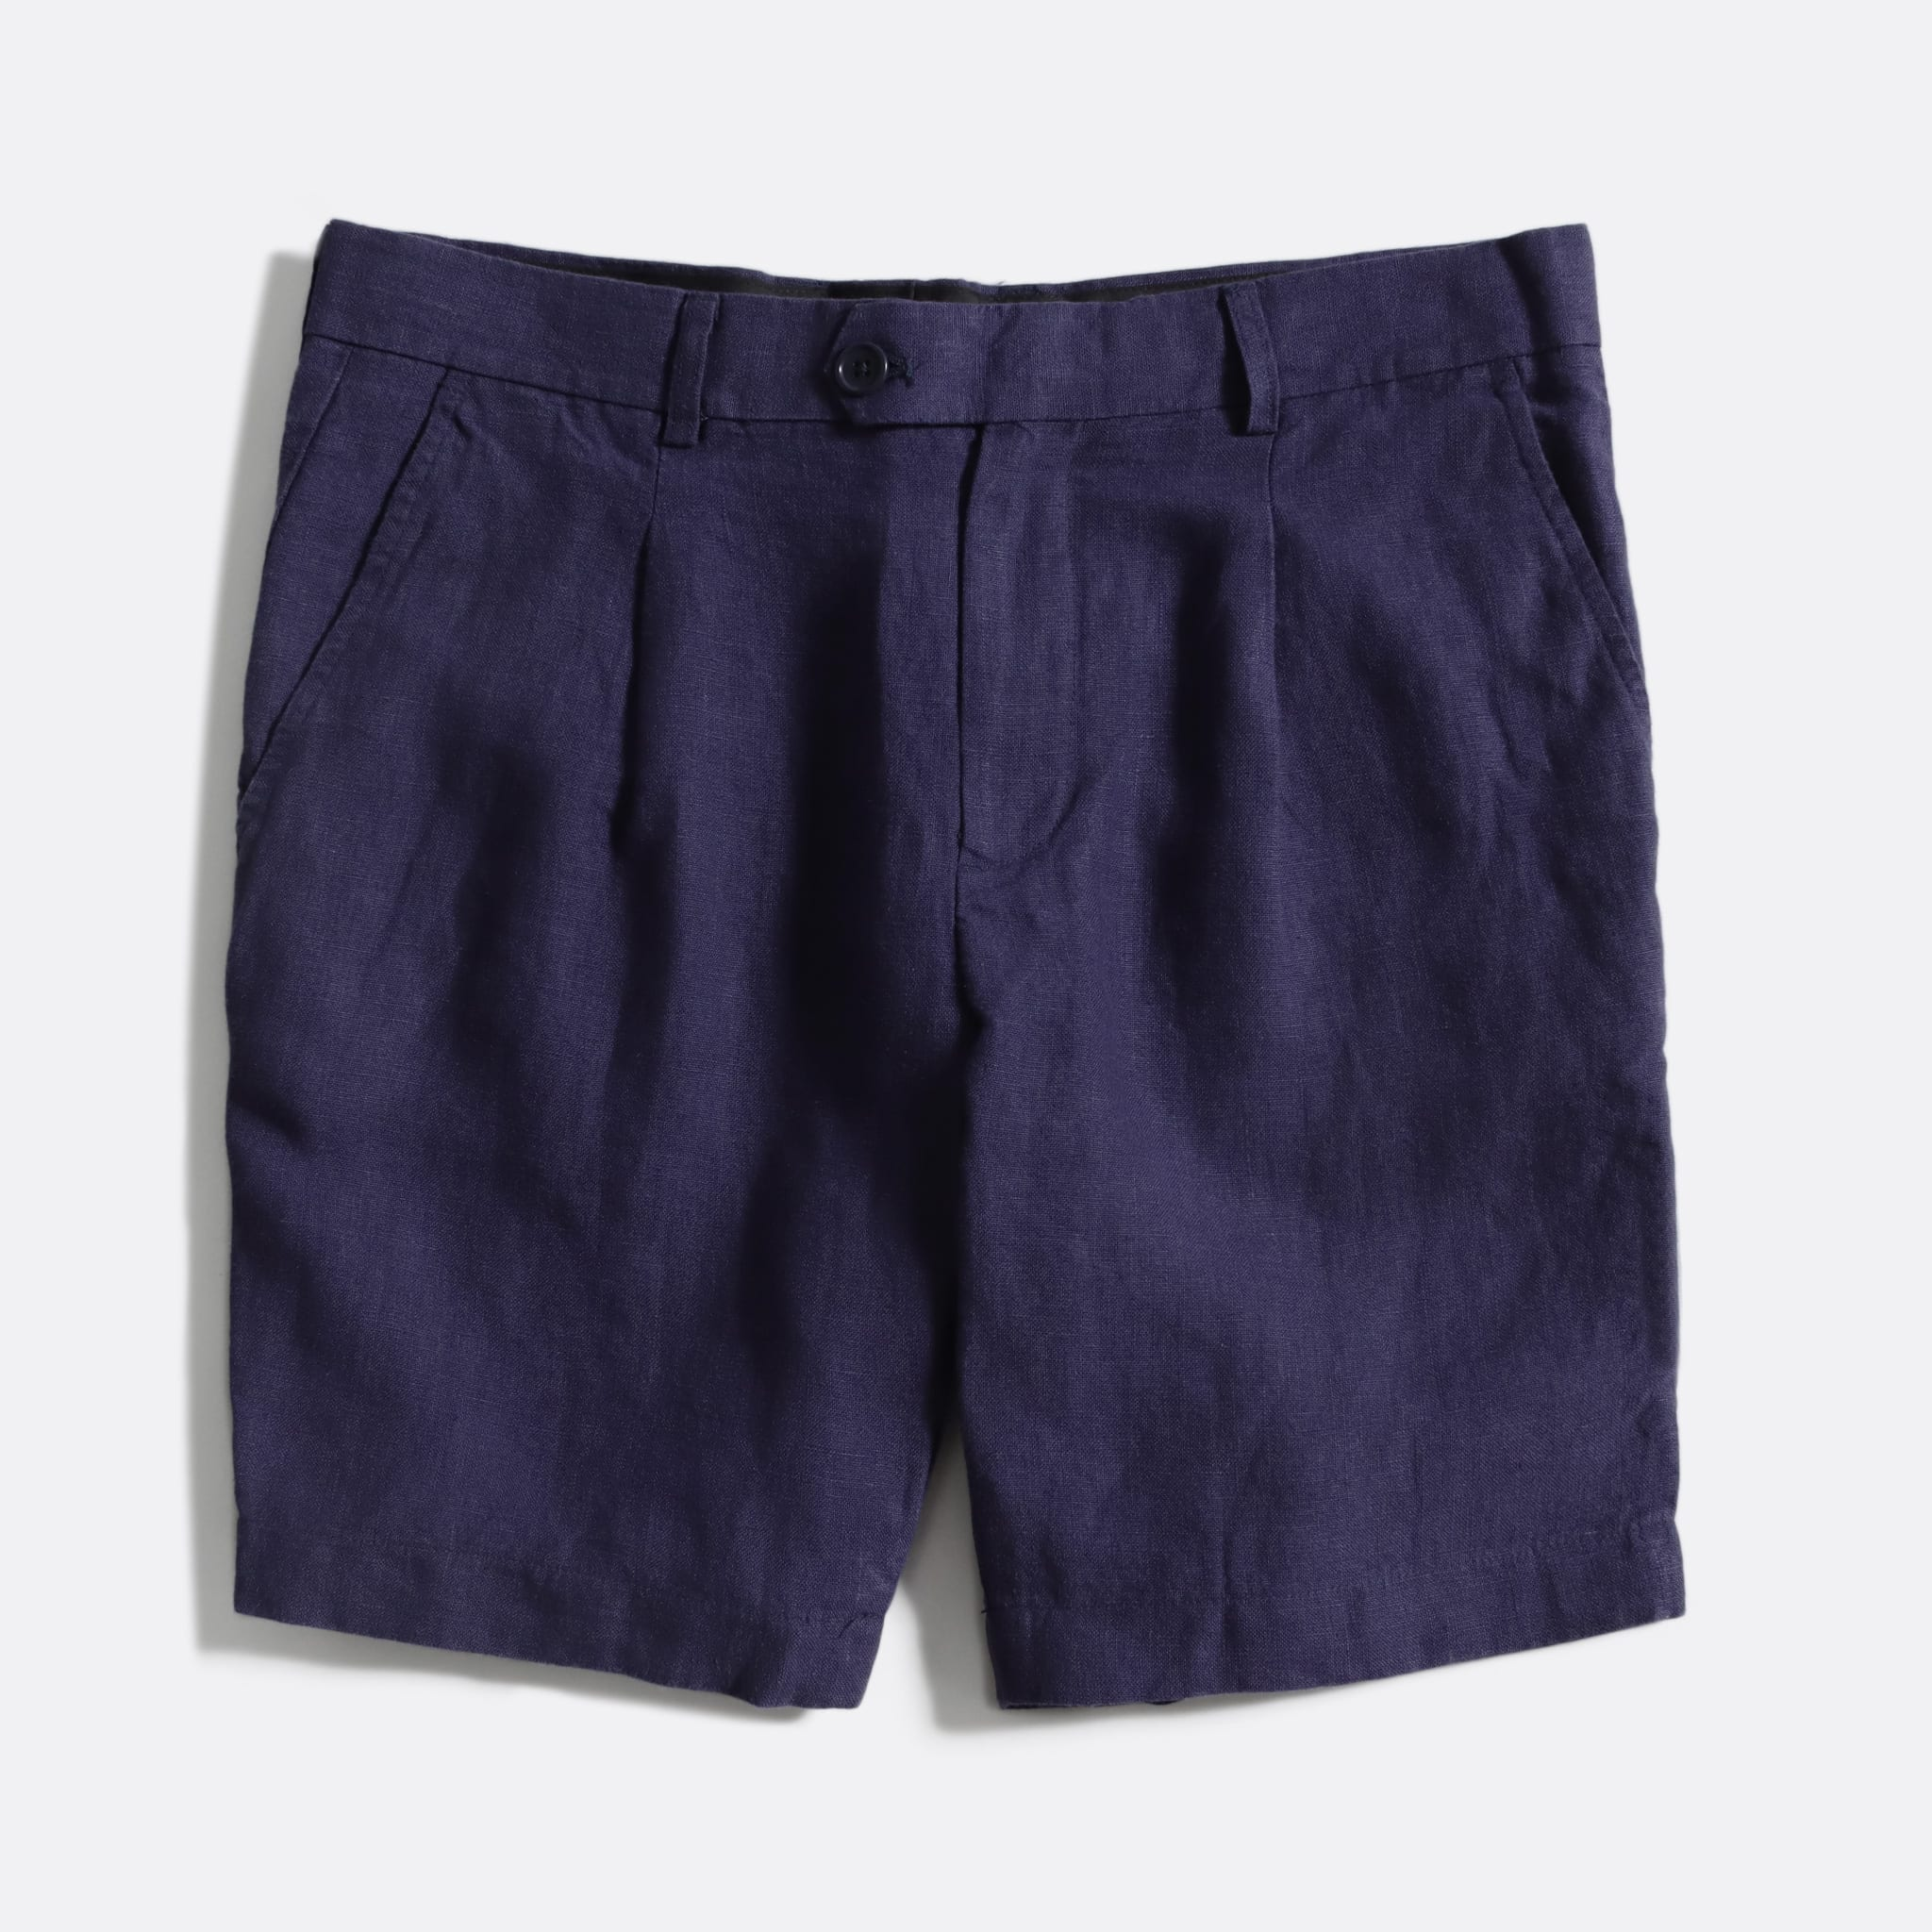 Far Afield Pleat Shorts a Ensign Blue Linen Fabric Smart Casual